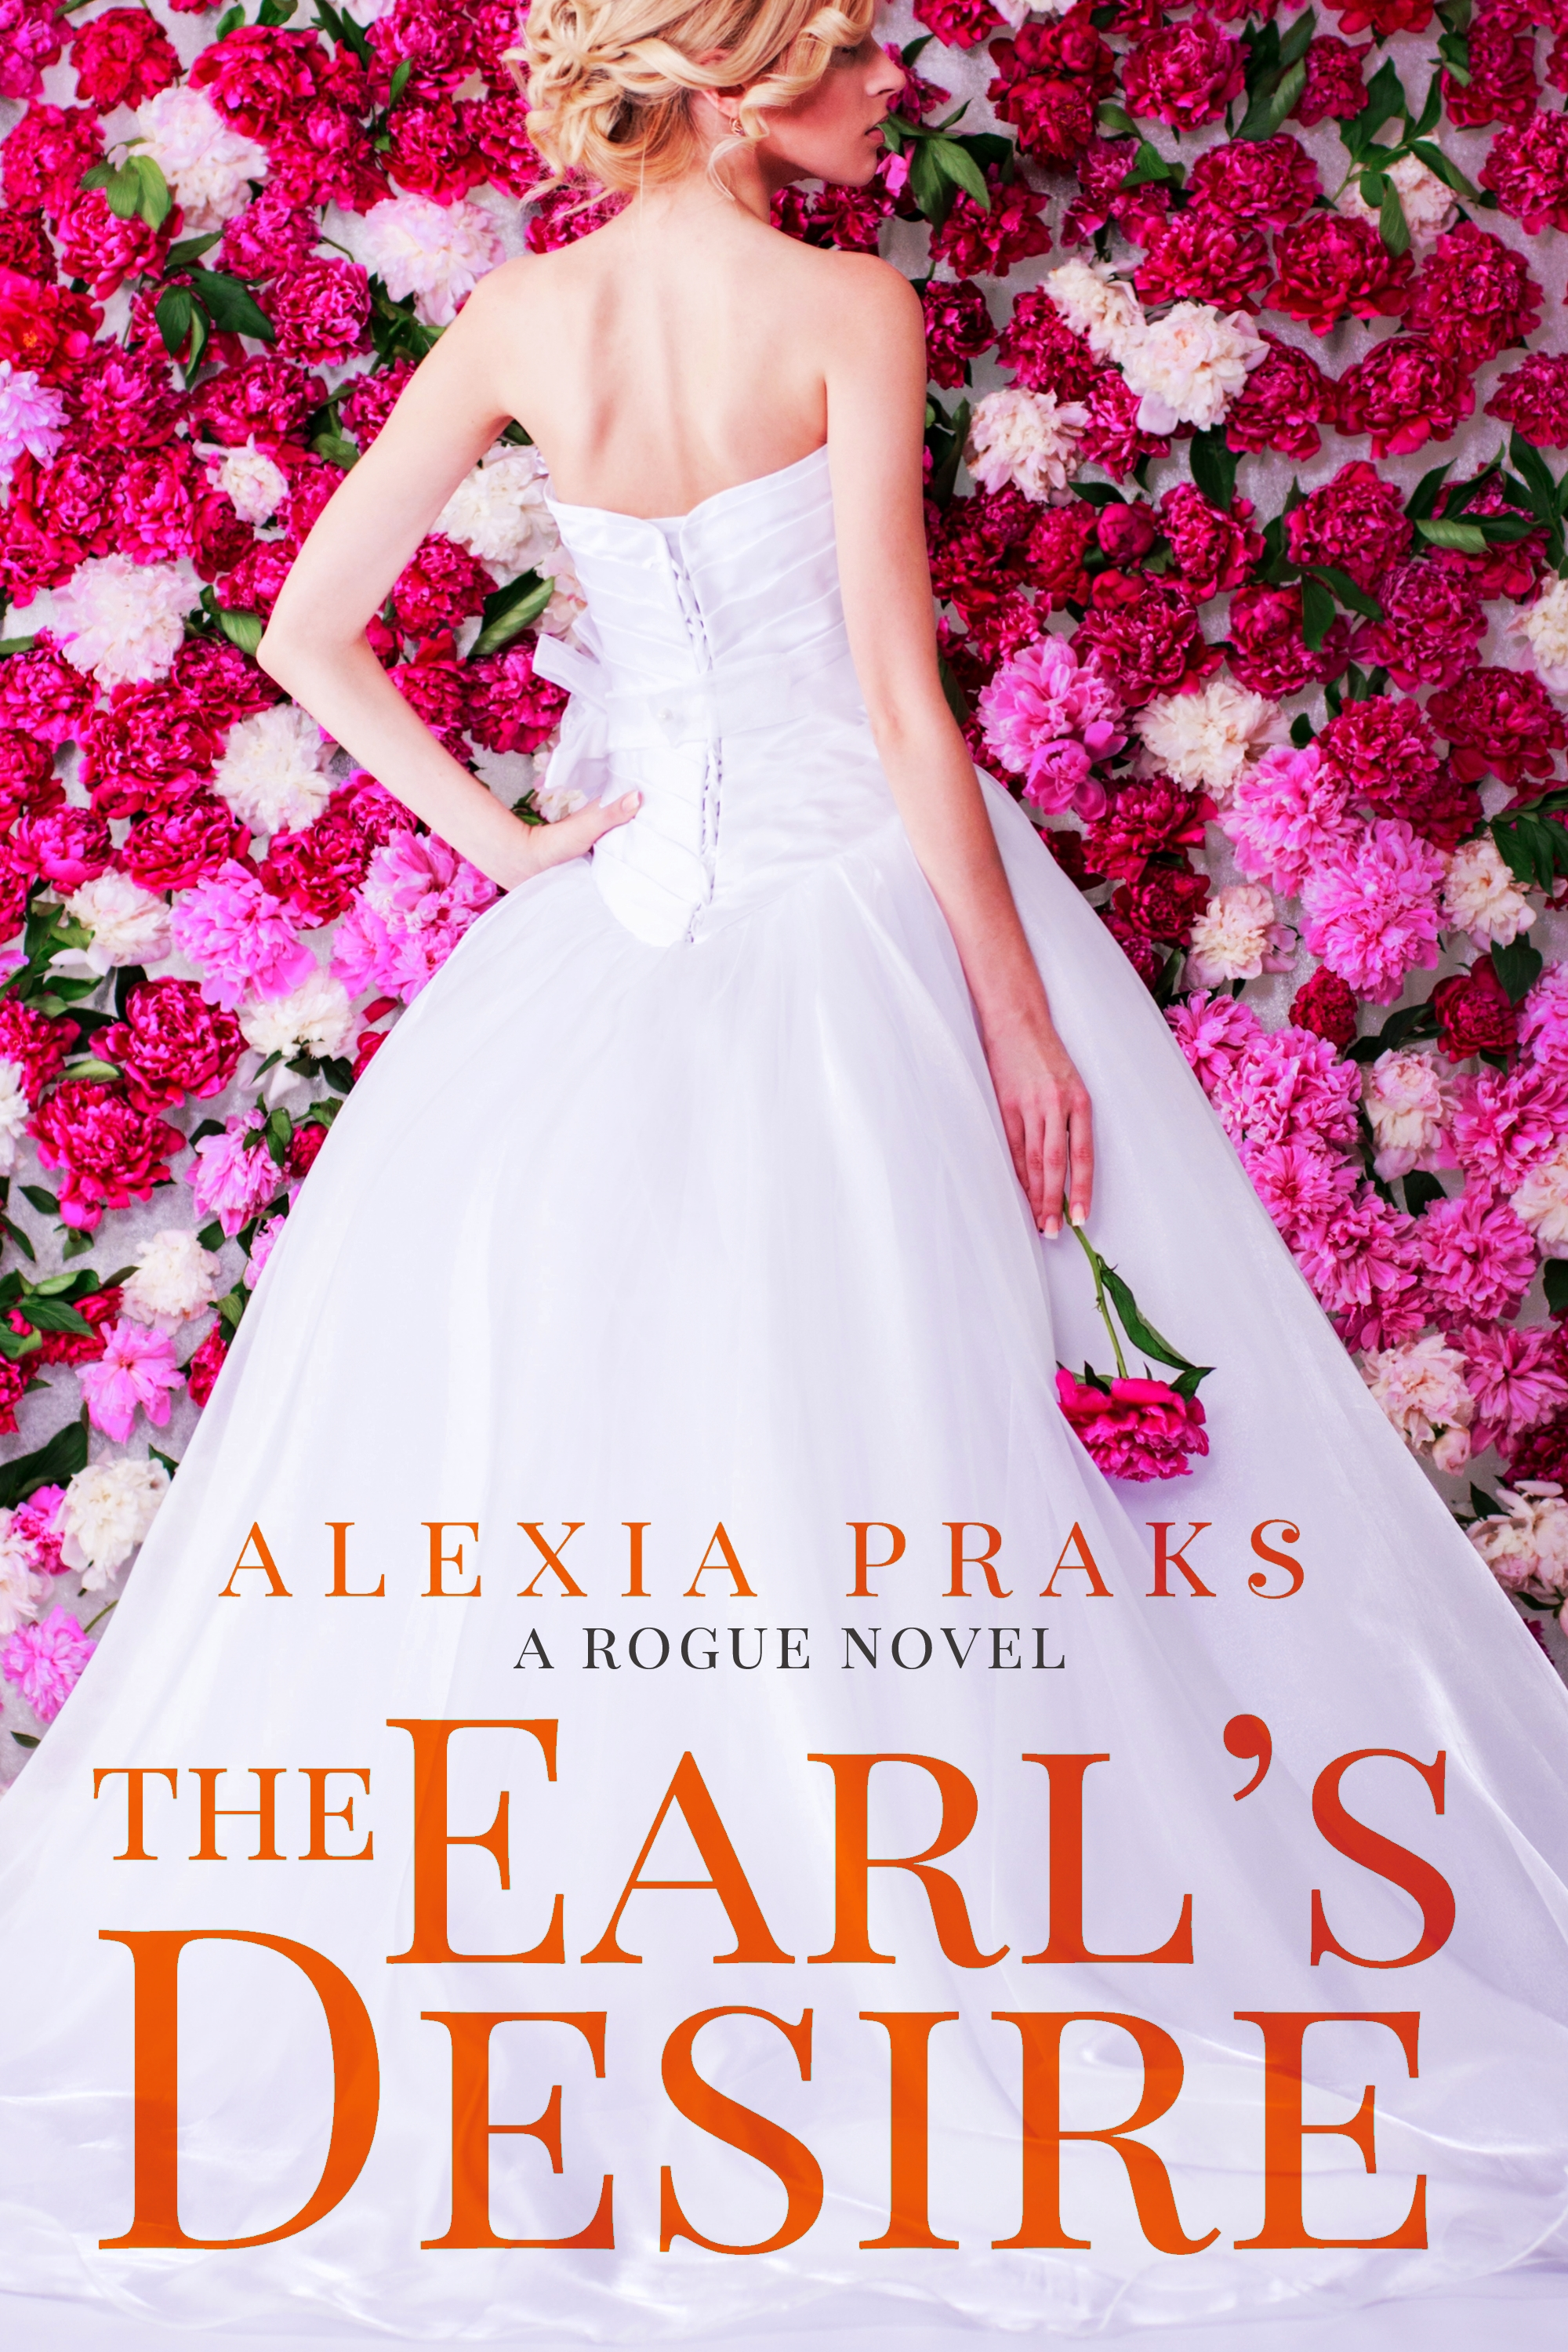 historical romance, alexia praks, the rogue series, sexy romance, regency romance